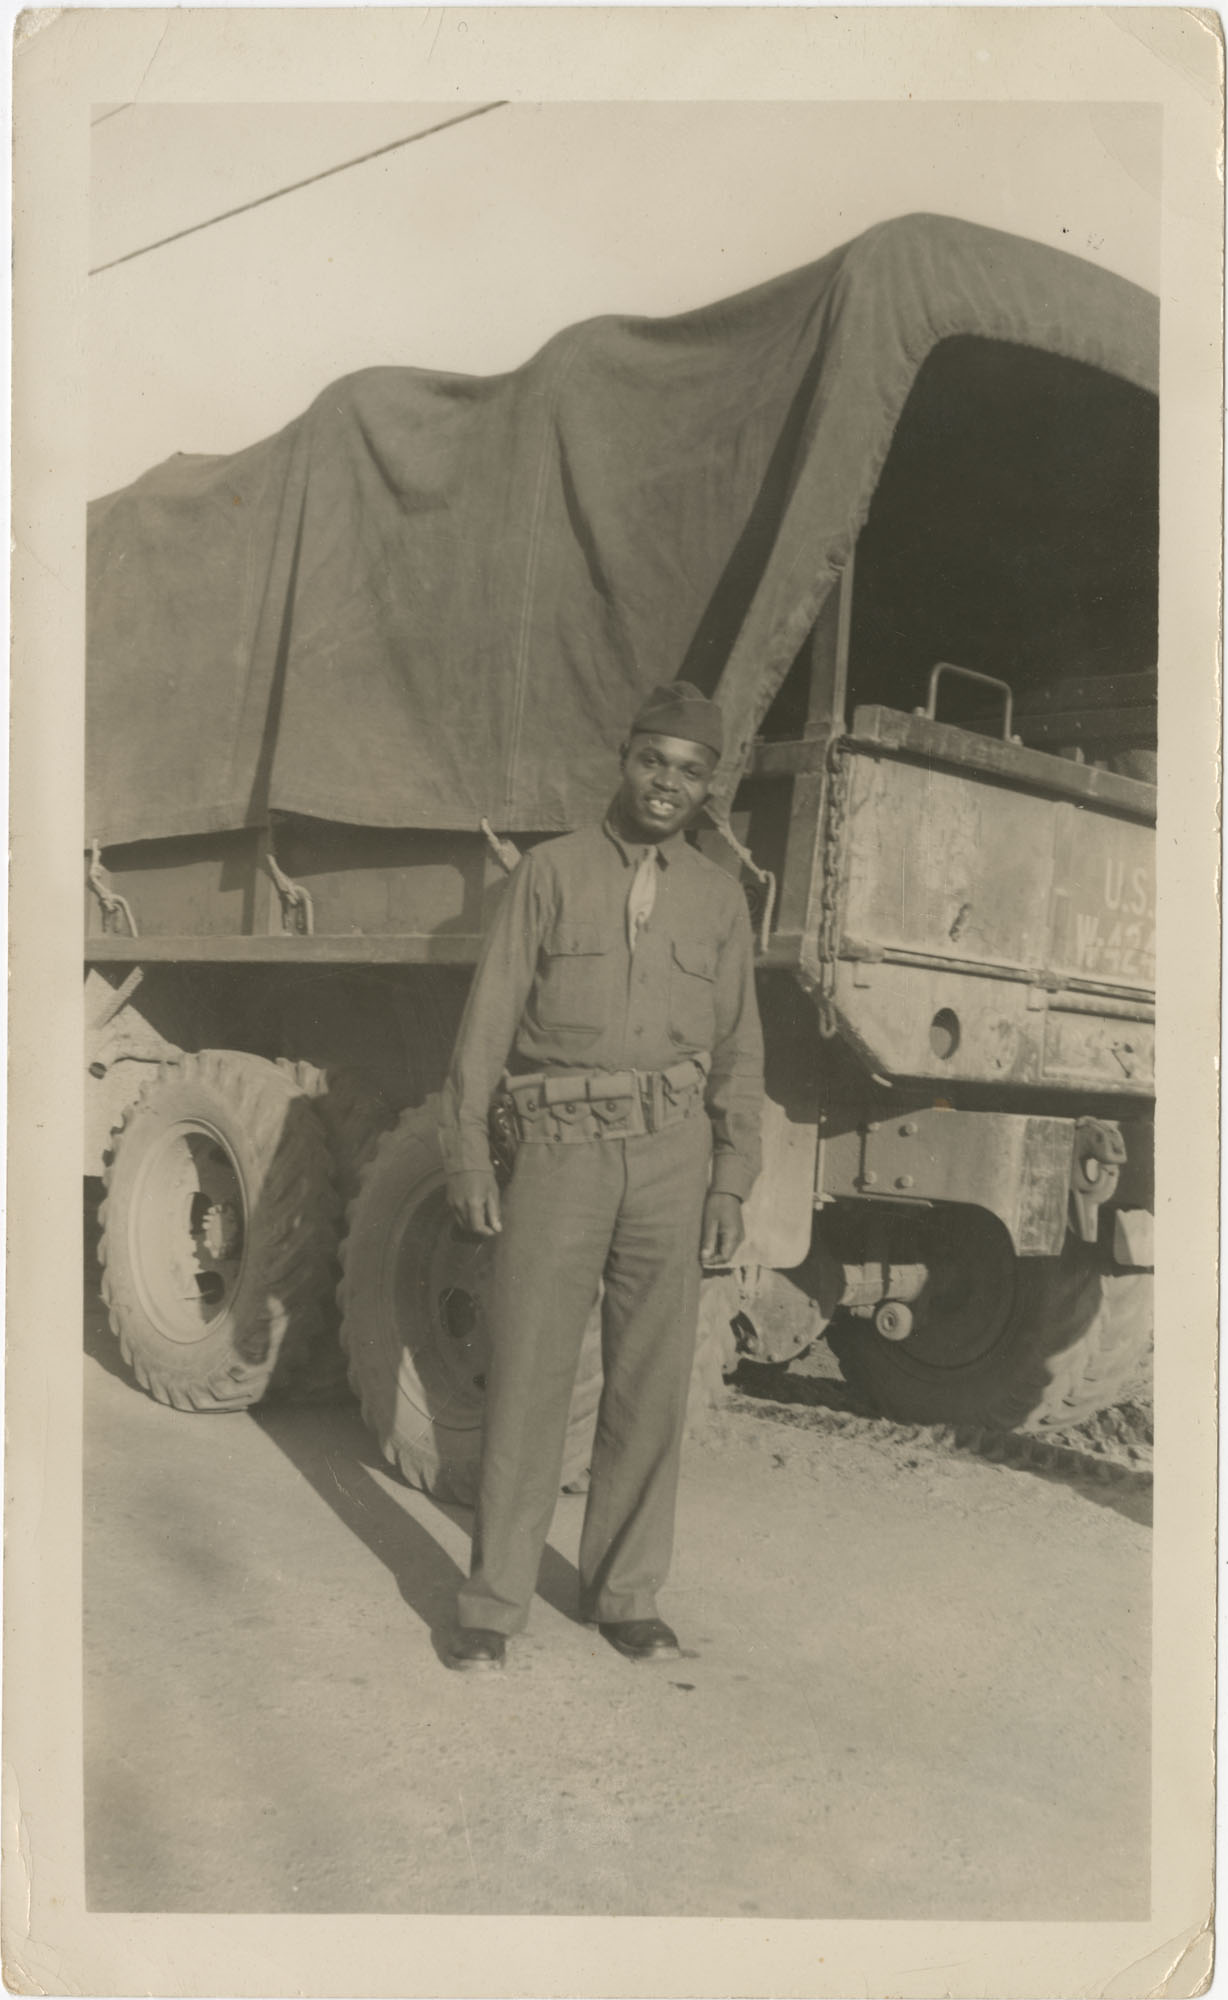 Photo of an African American Man Posing Next to a Military Truck